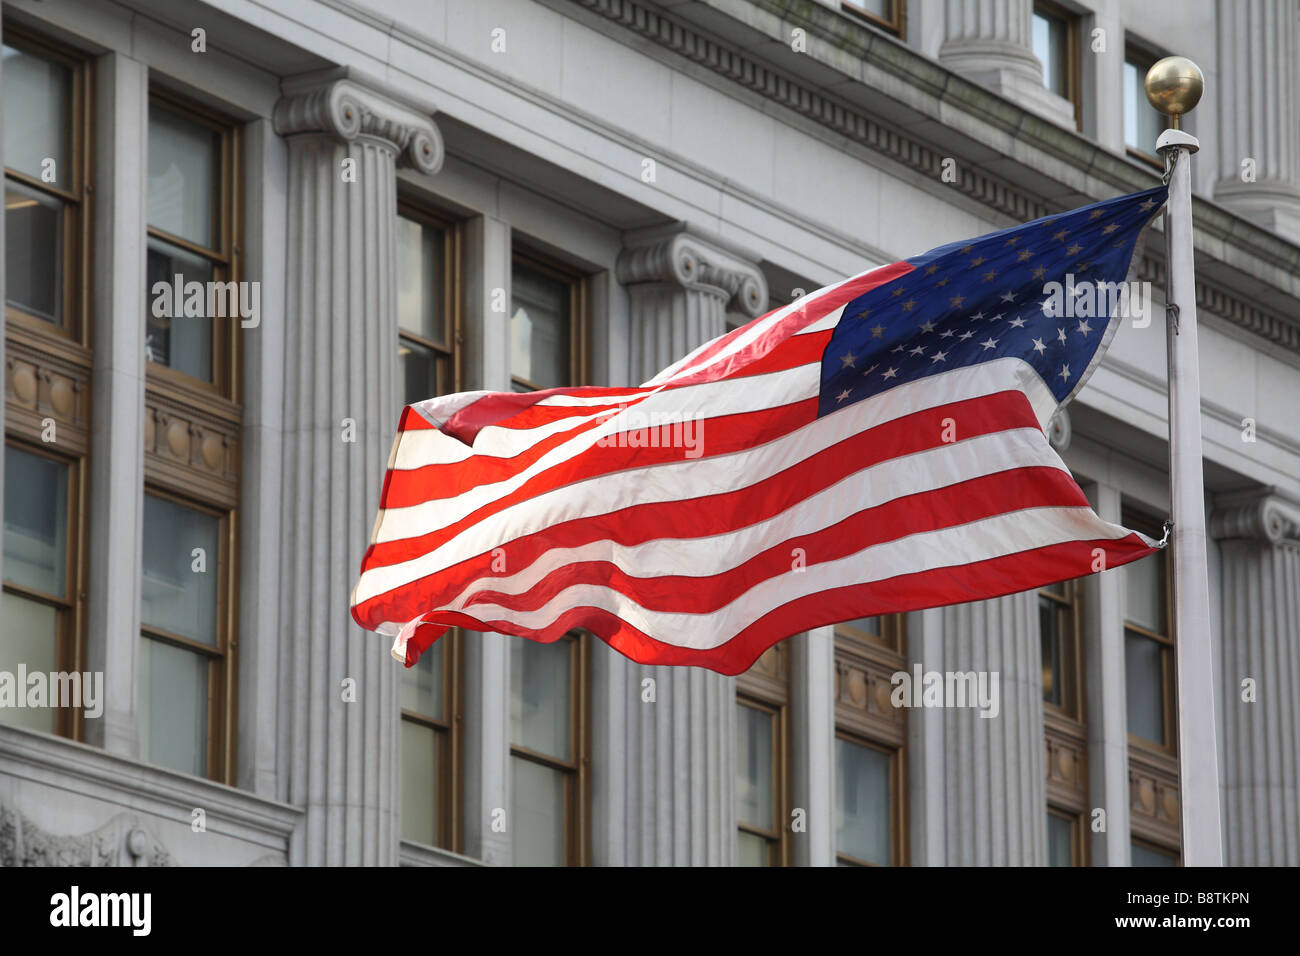 American flag flying in front of federal style architecture - Stock Image